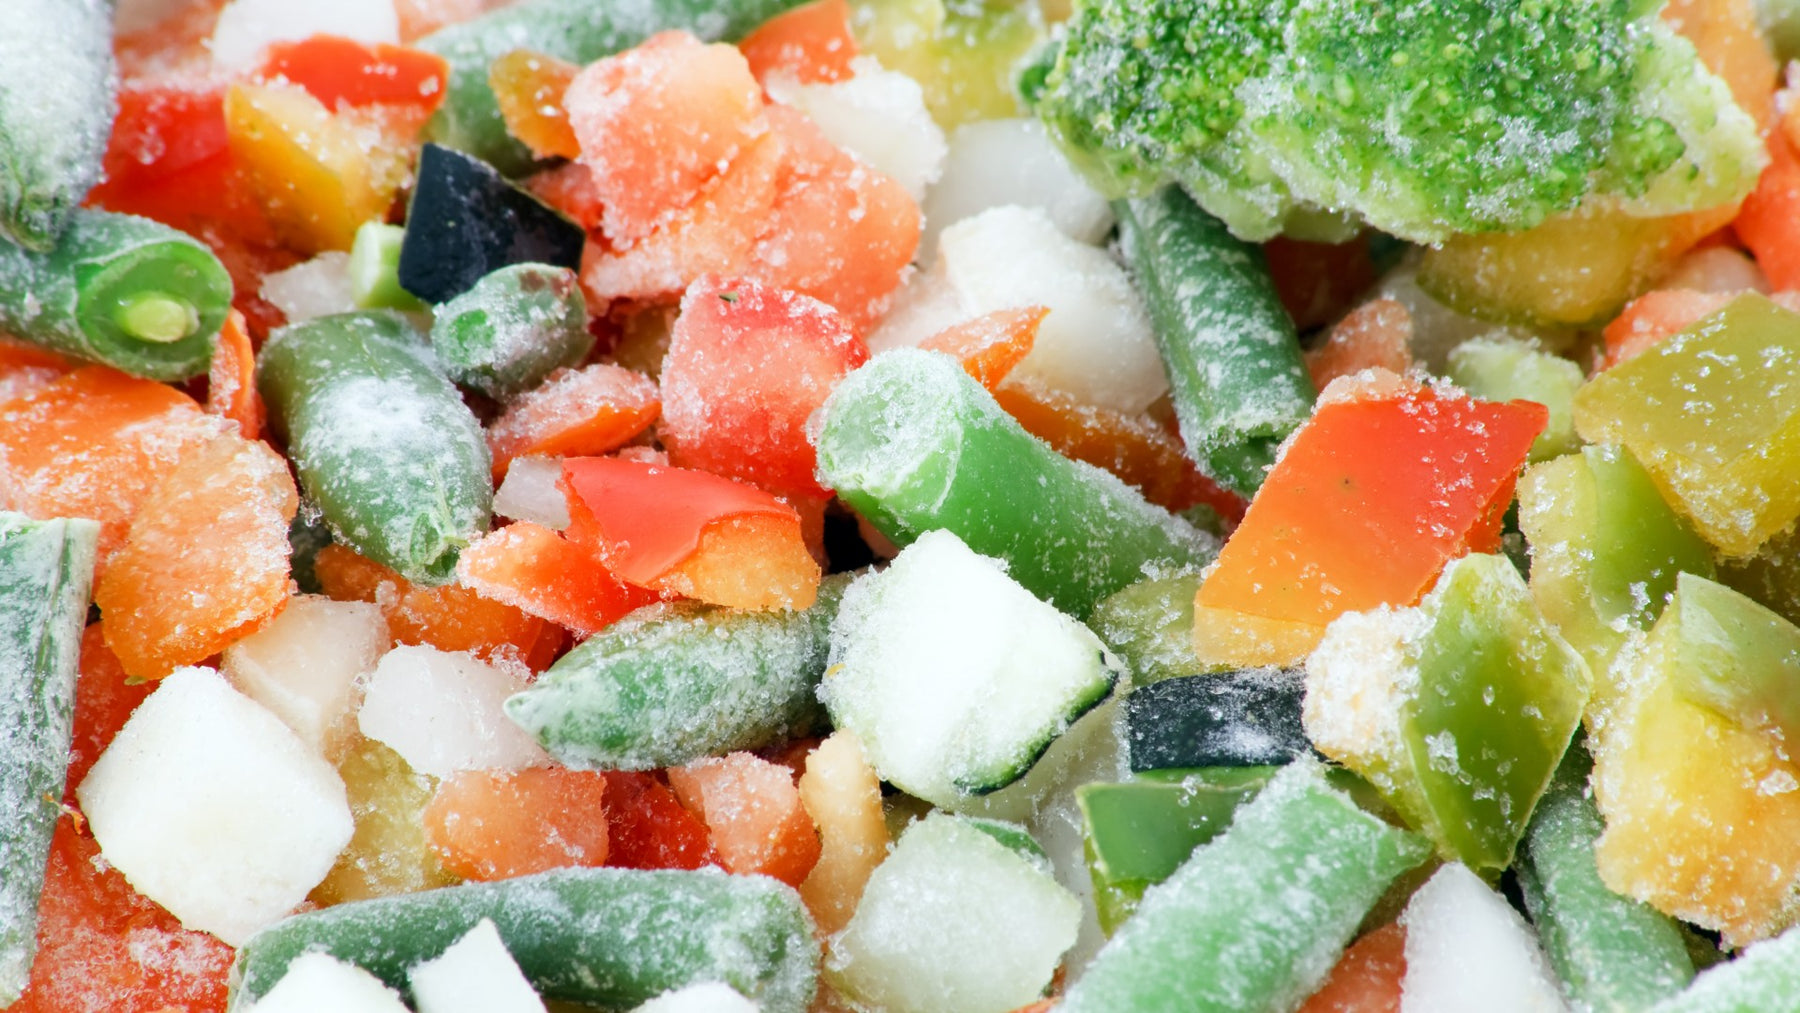 Frozen Vegetables & Fruit - Worse for You Than Fresh?